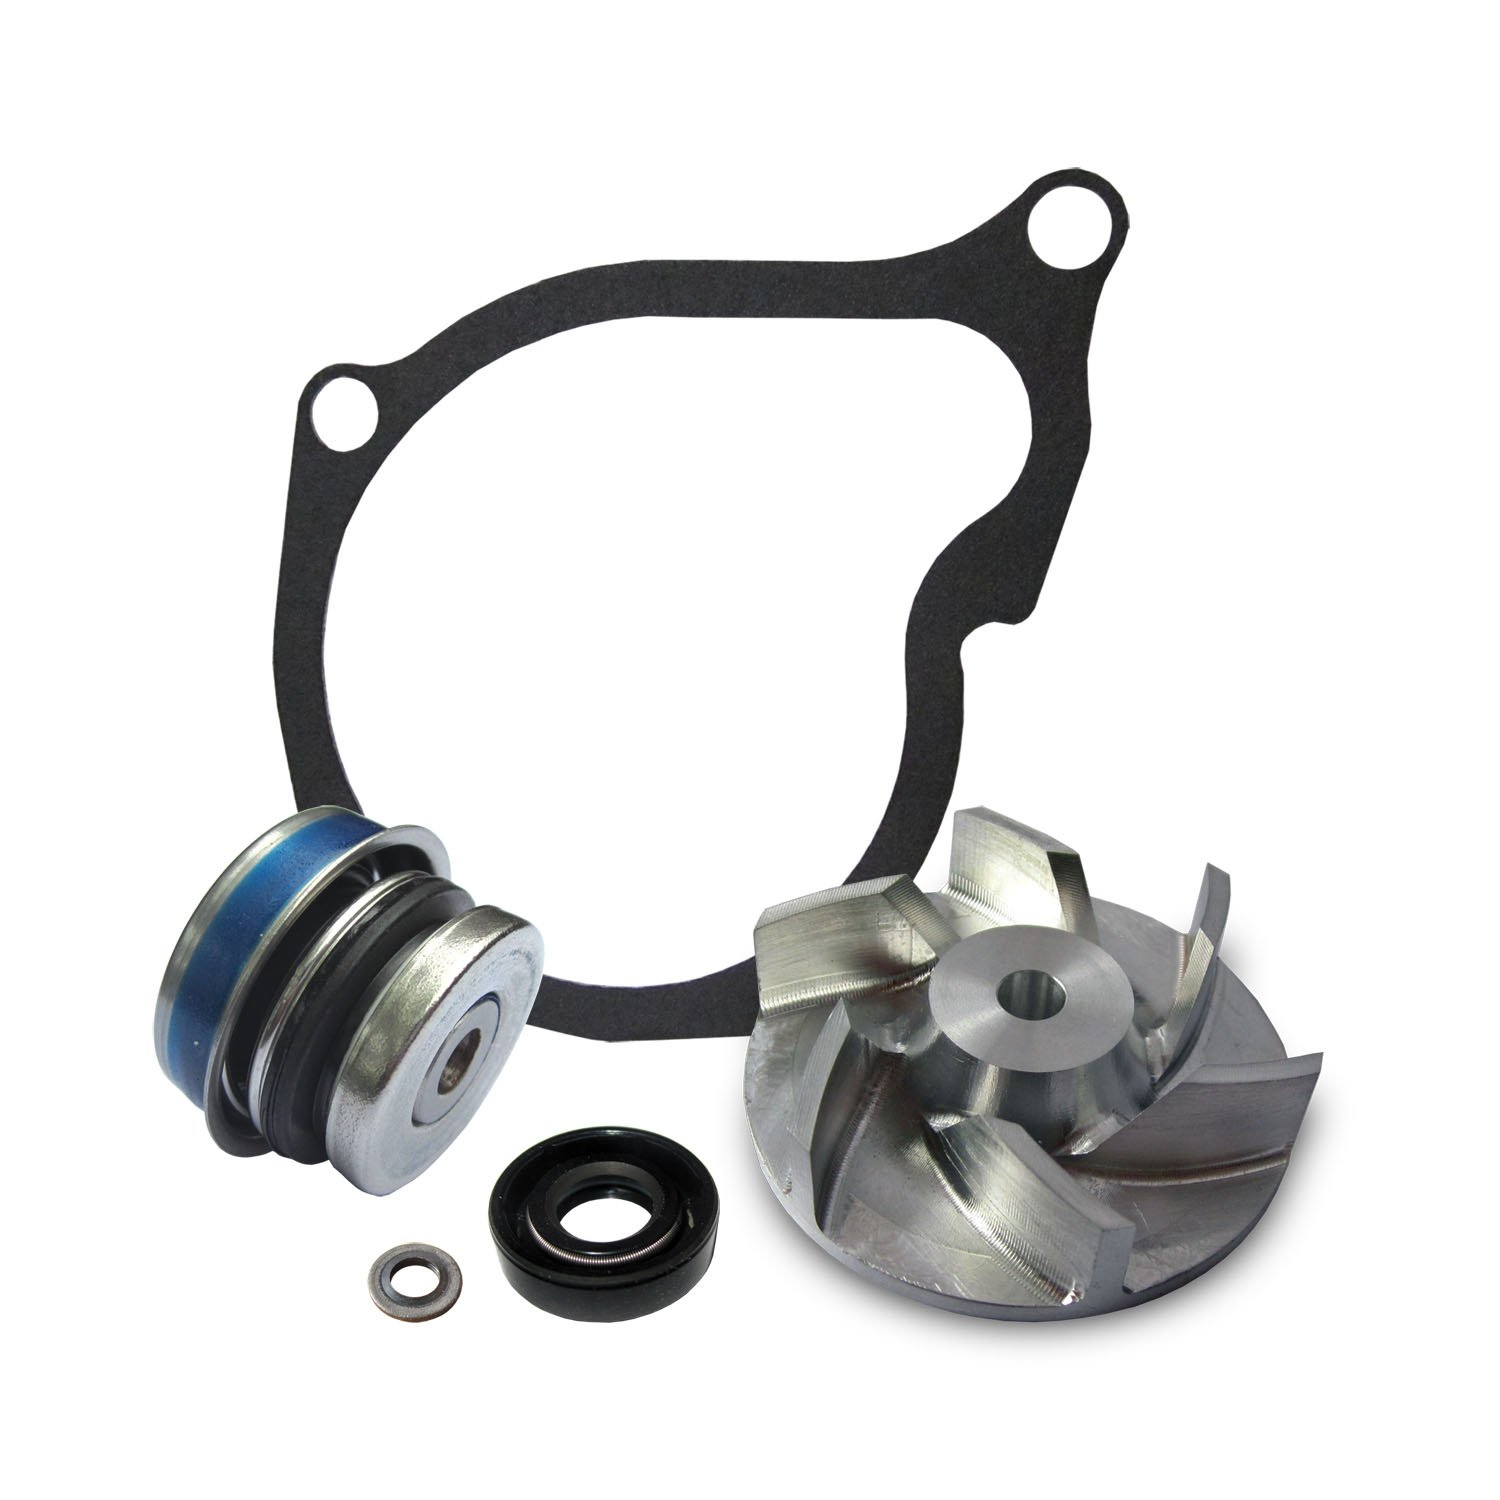 Polaris Sportsman 400 500 Water Pump Rebuild Kit with Billet Impeller